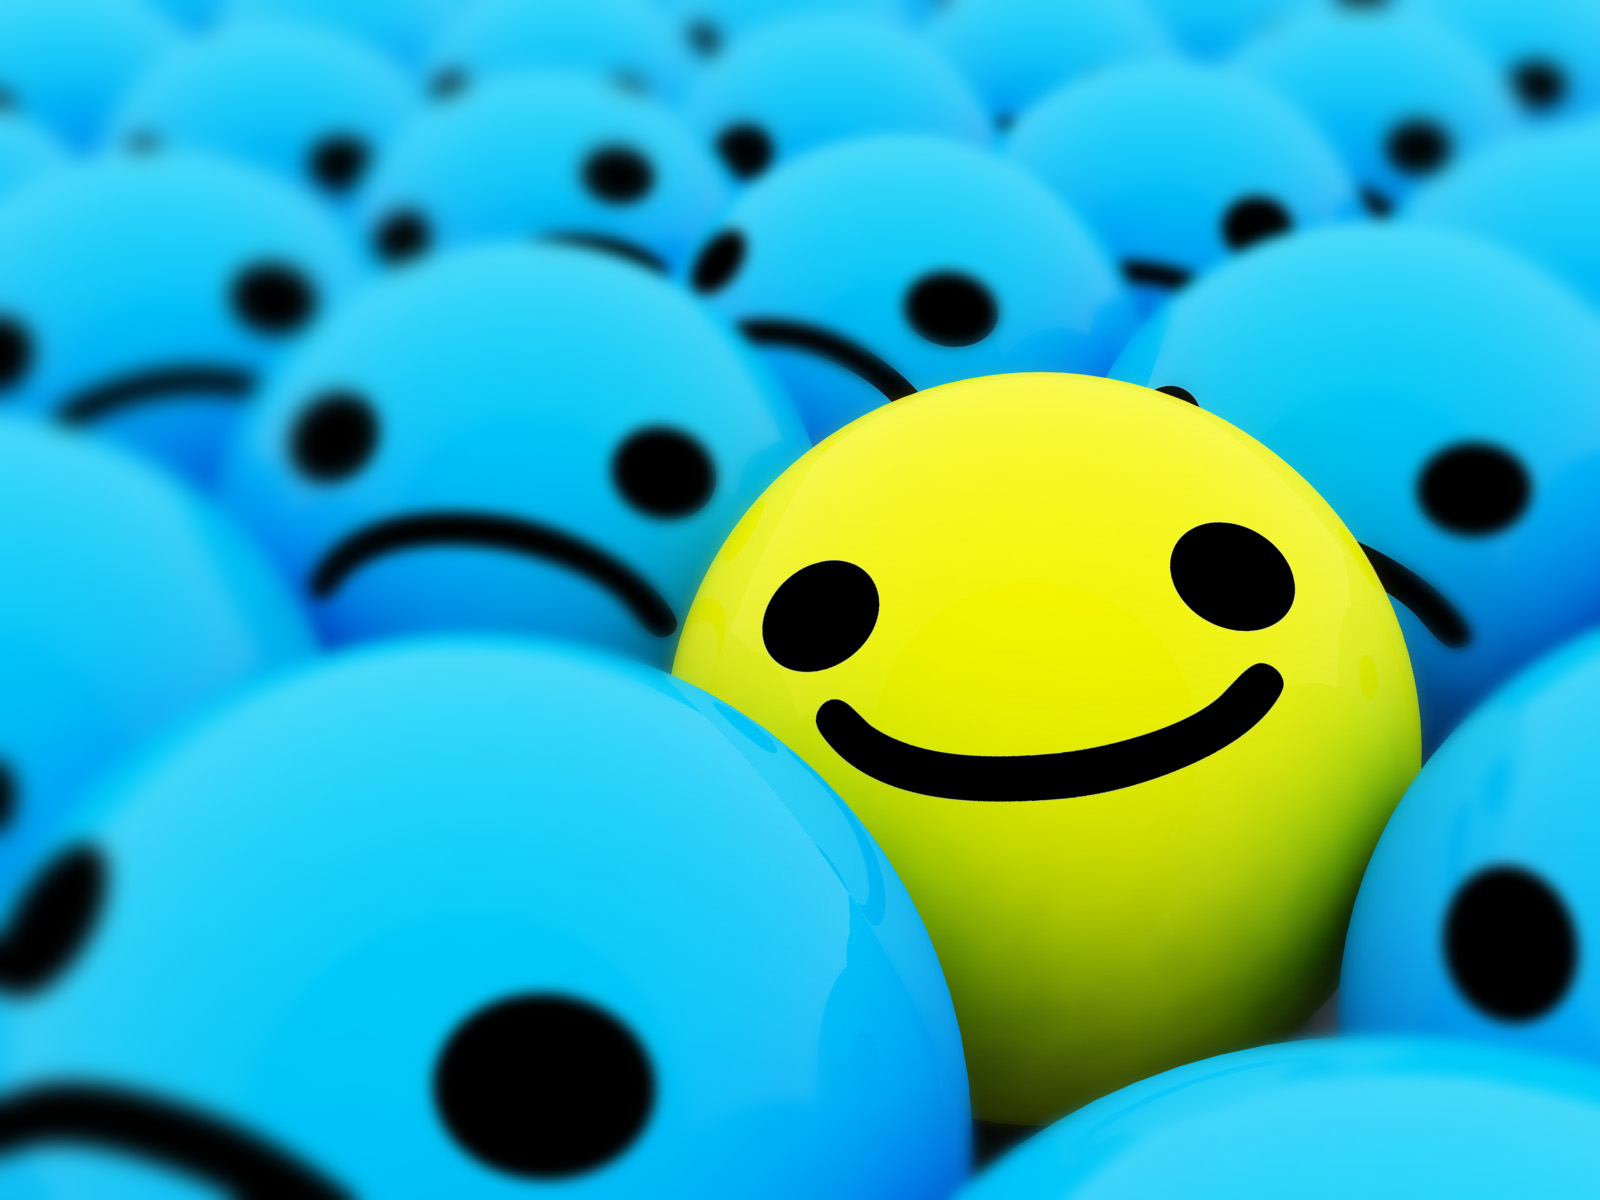 Smiley wallpaper  Cell/Tablet wallpapers  Pinterest  Wallpapers 1600x1200